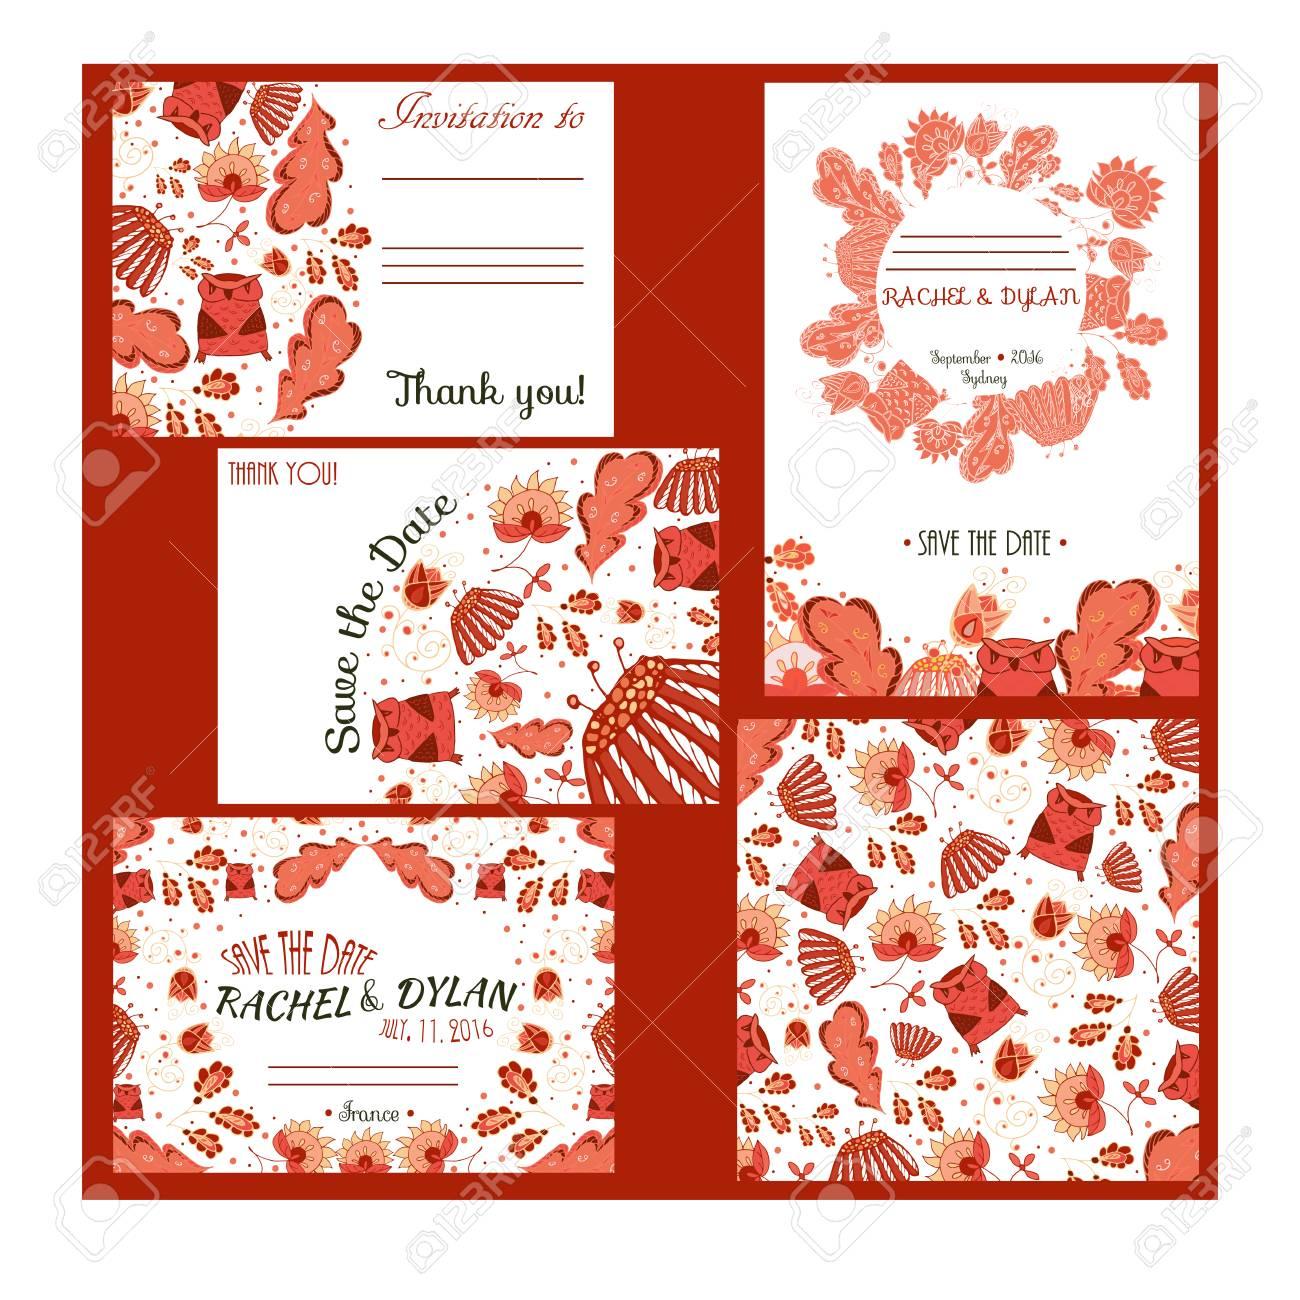 Save The Date Card. Invitation Card For Wedding, Party Or Date ...